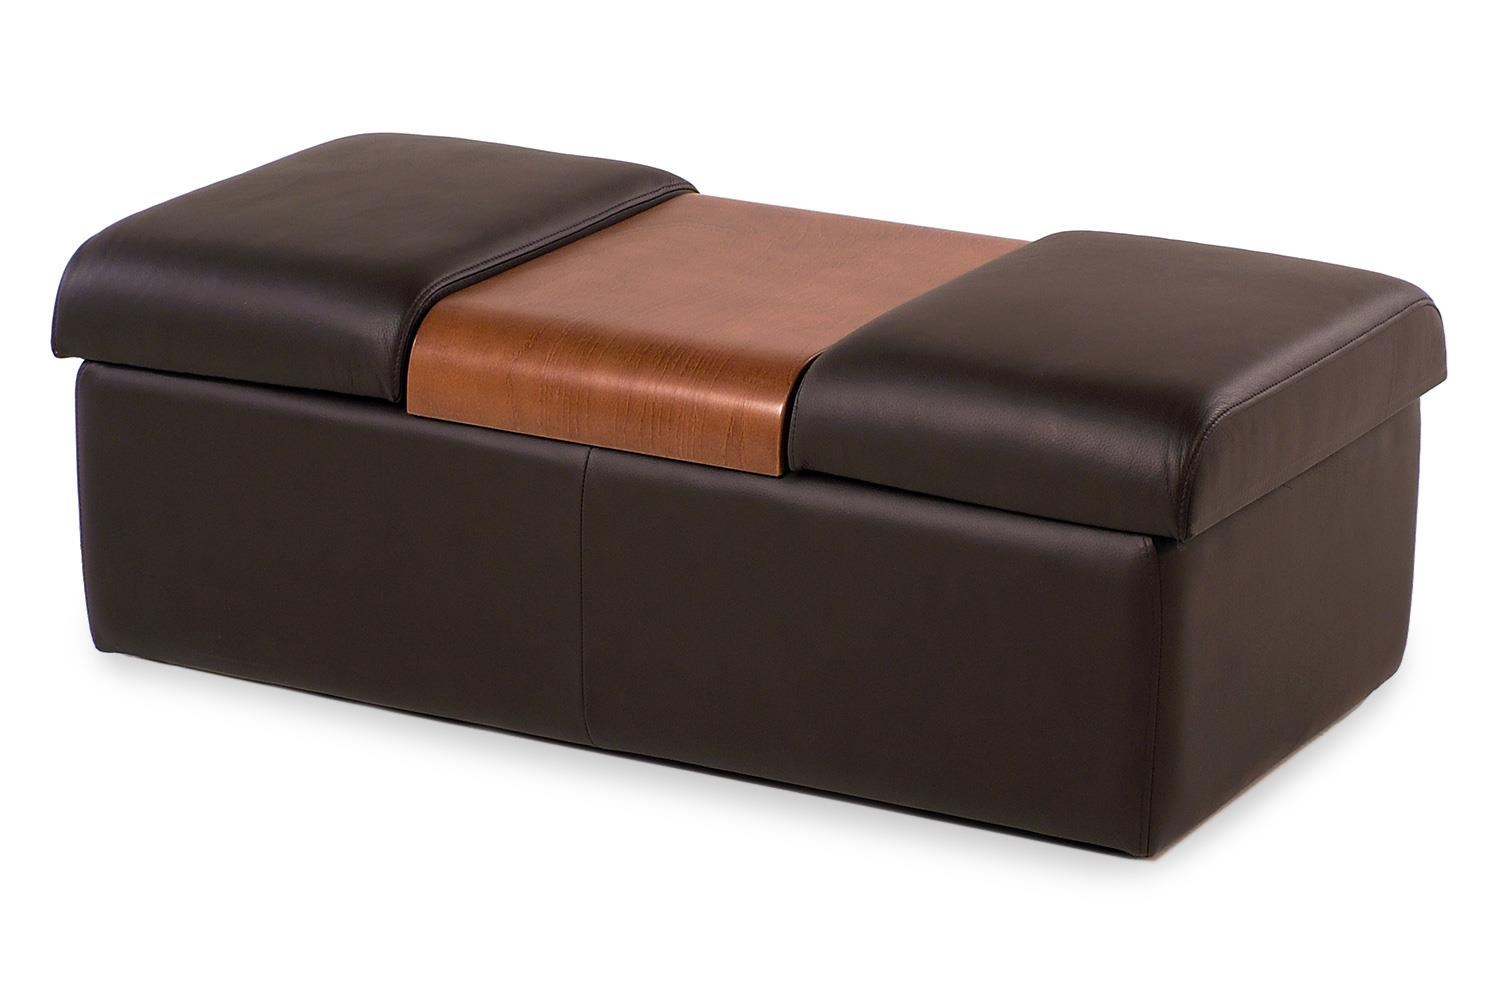 Fjords by Hjellegjerde Amsterdam Contemporary Storage Ottoman - Item Number: OTTO-NL120